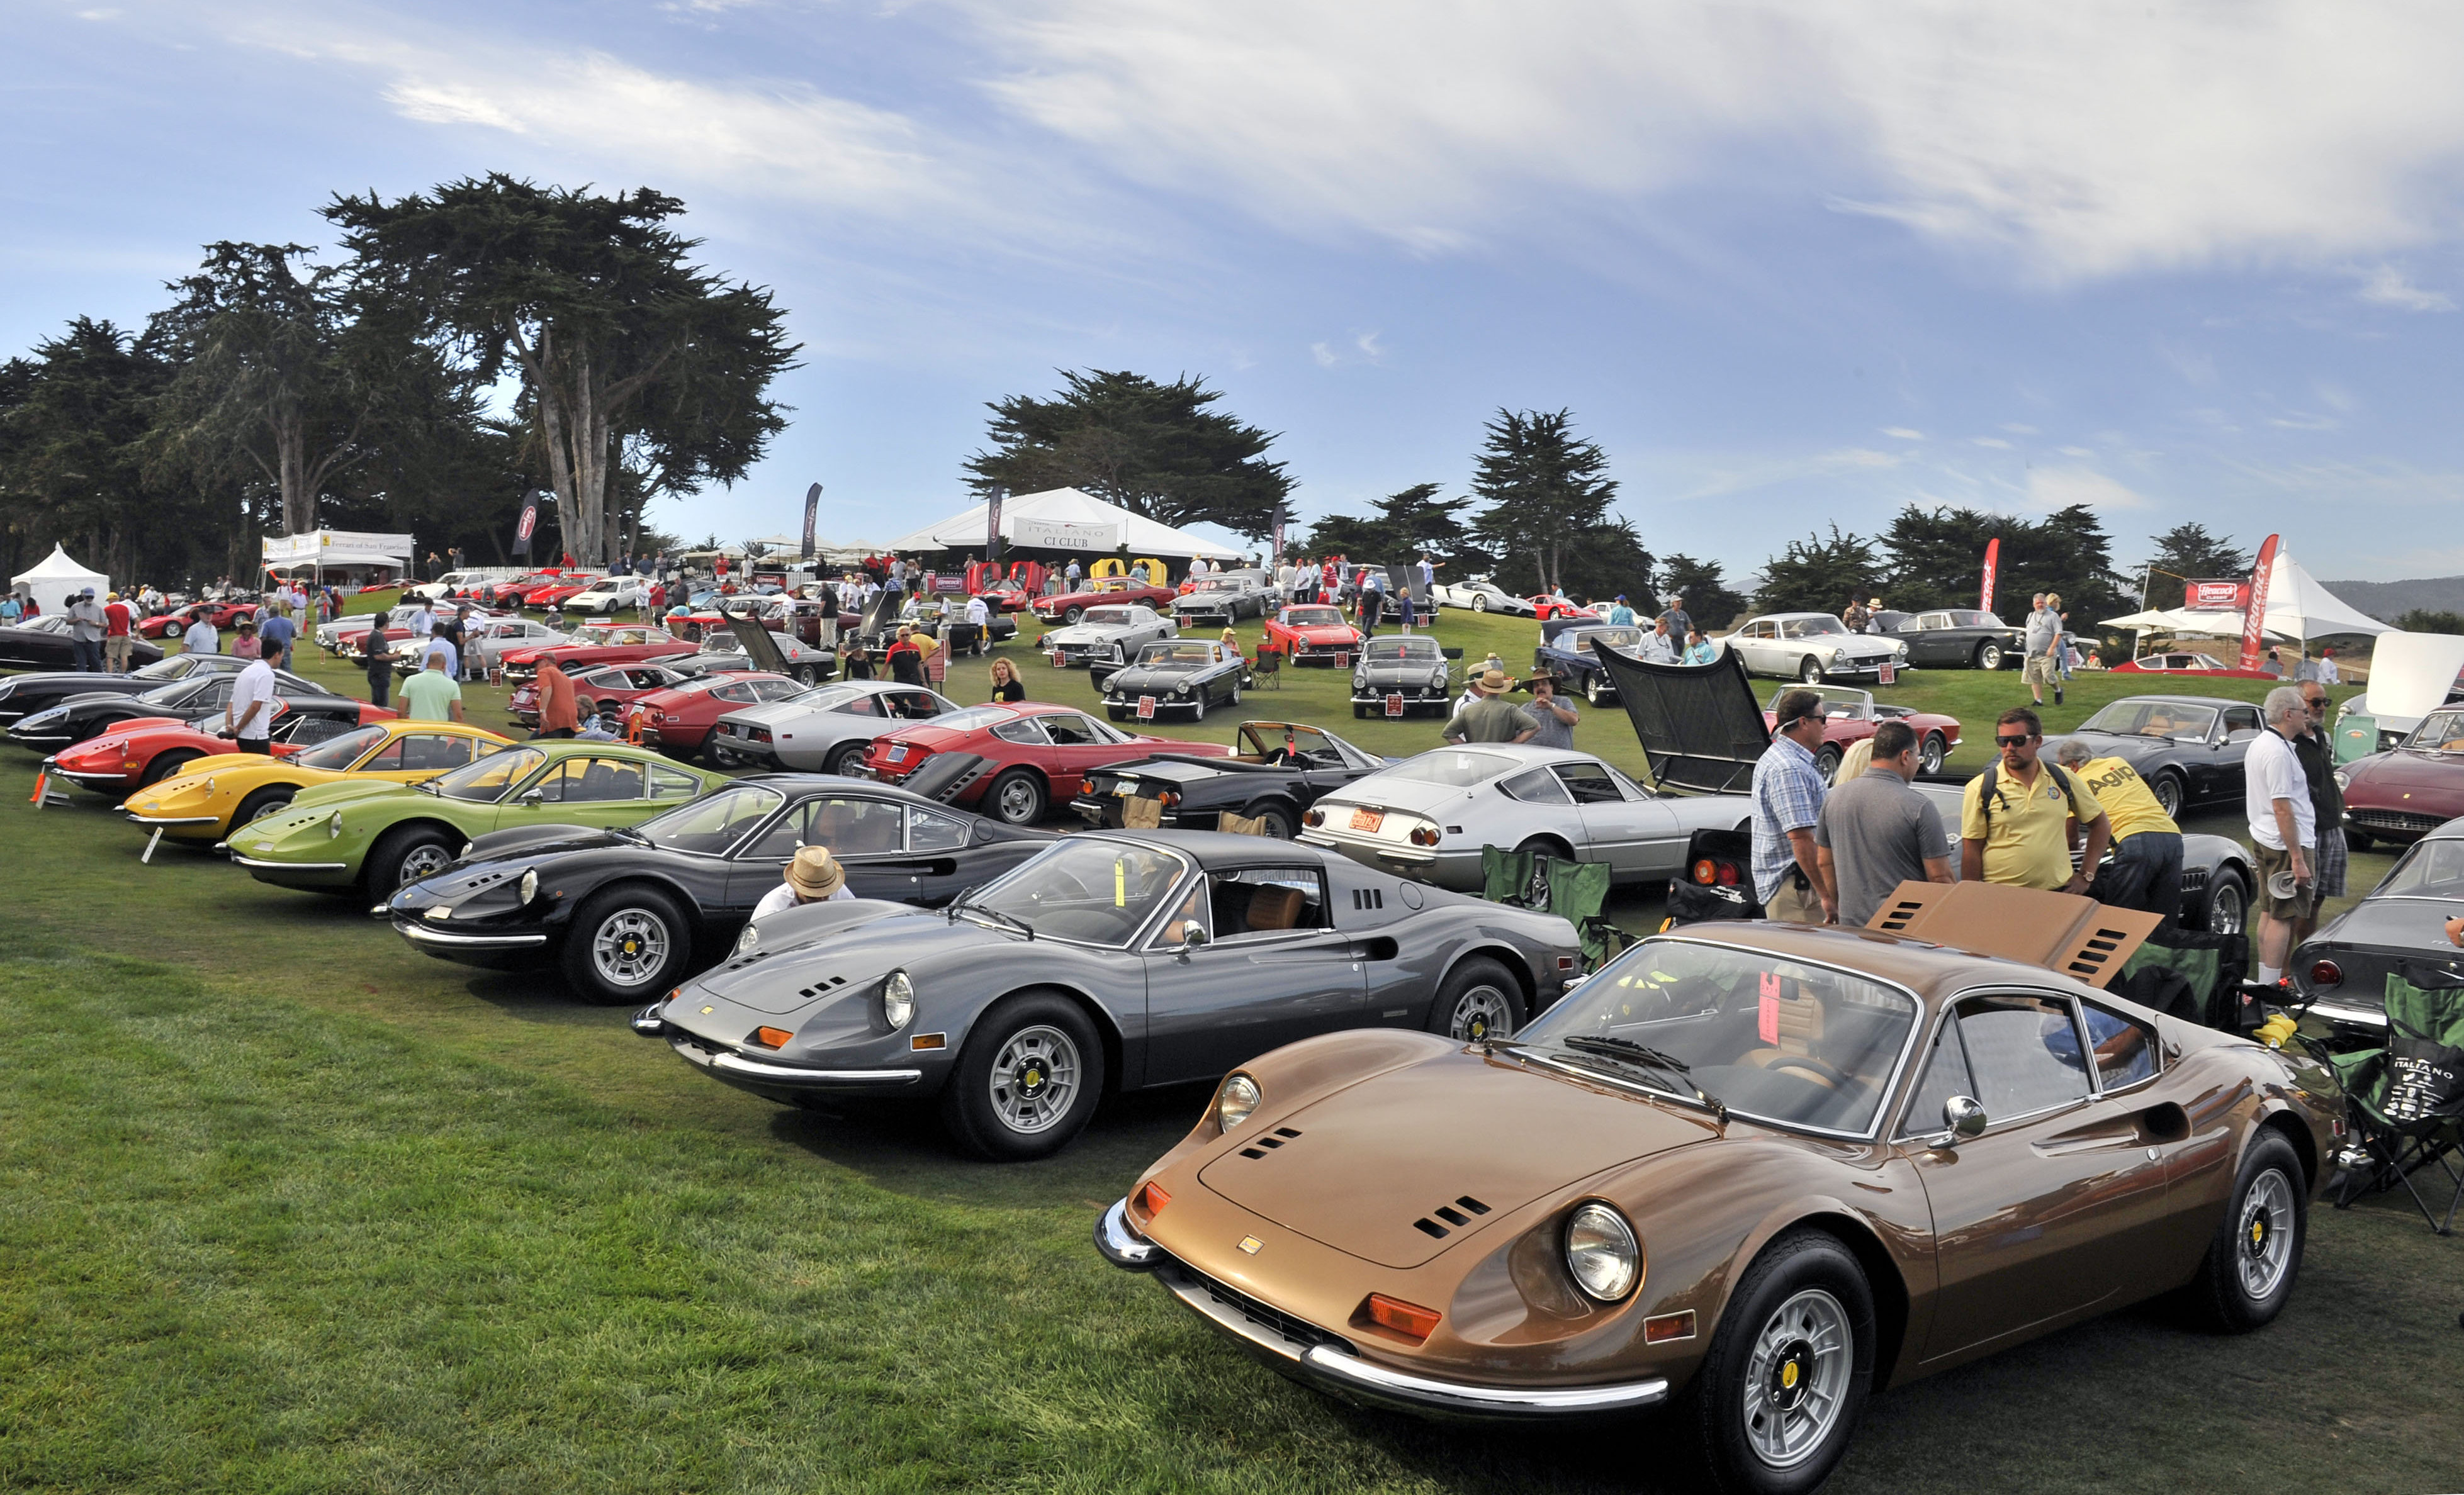 A line of colorful Ferrari Dino GTs